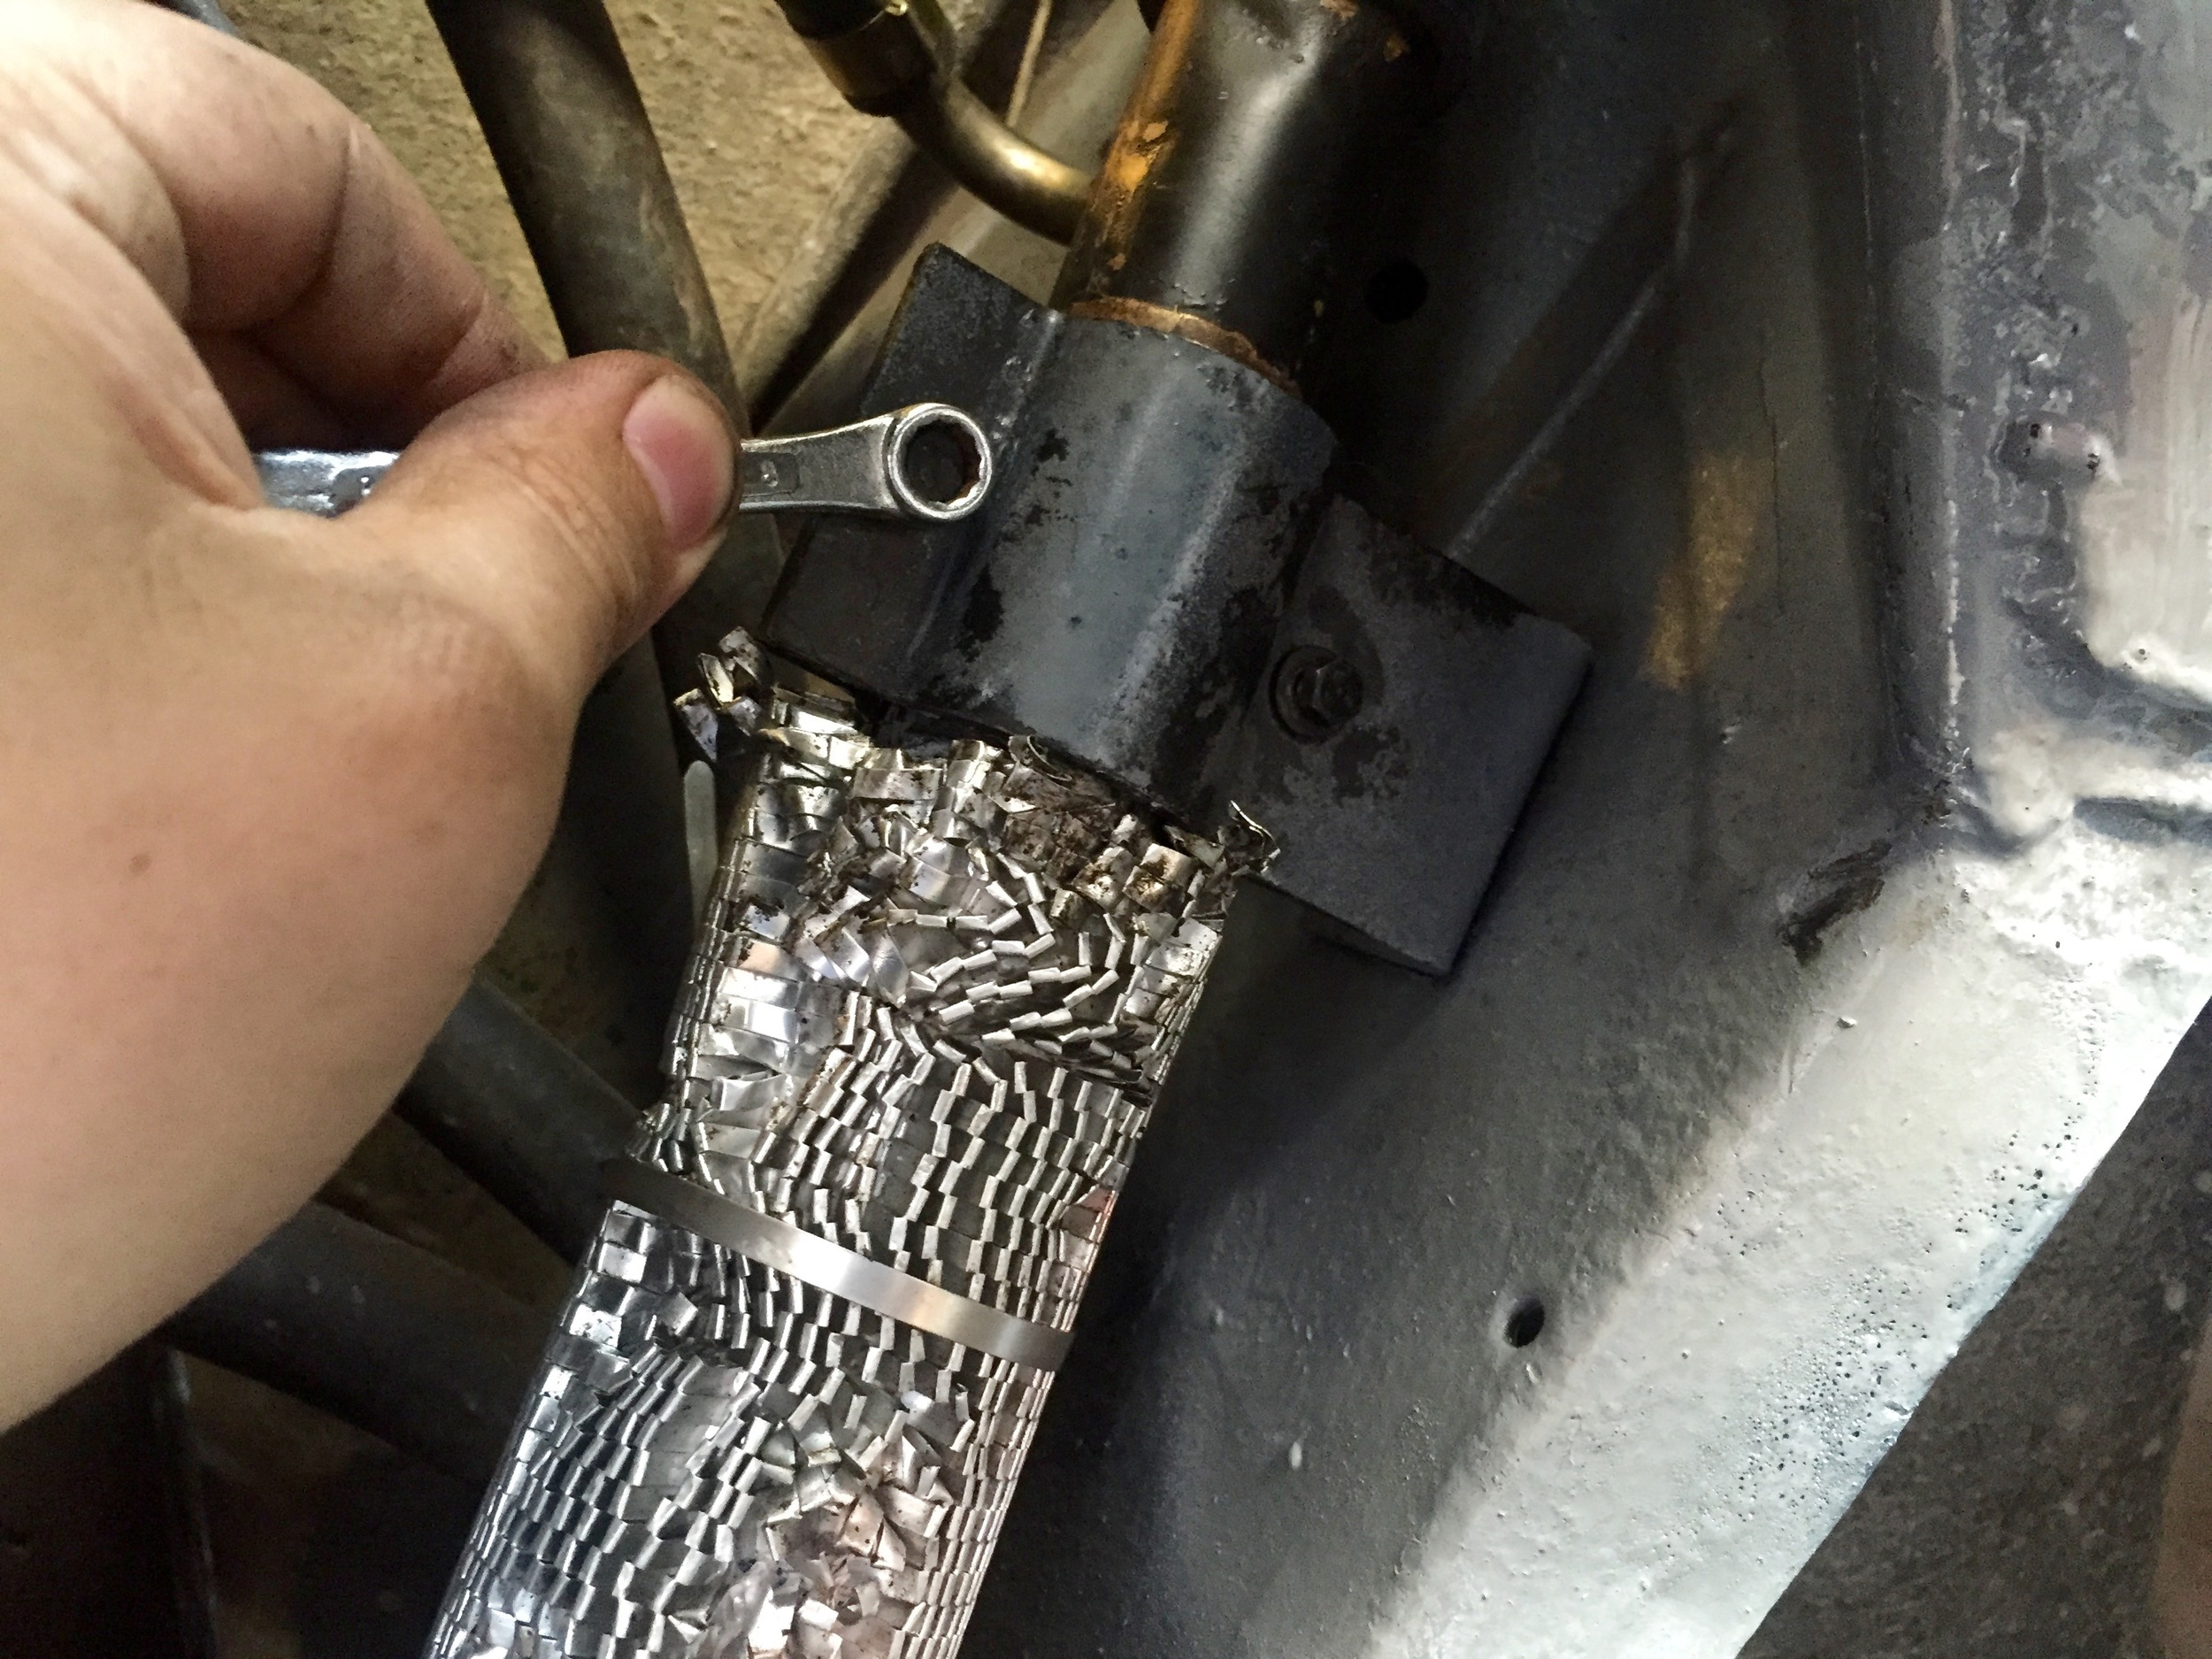 Securing the coolant pipe to the bracket with an 8mm socket.